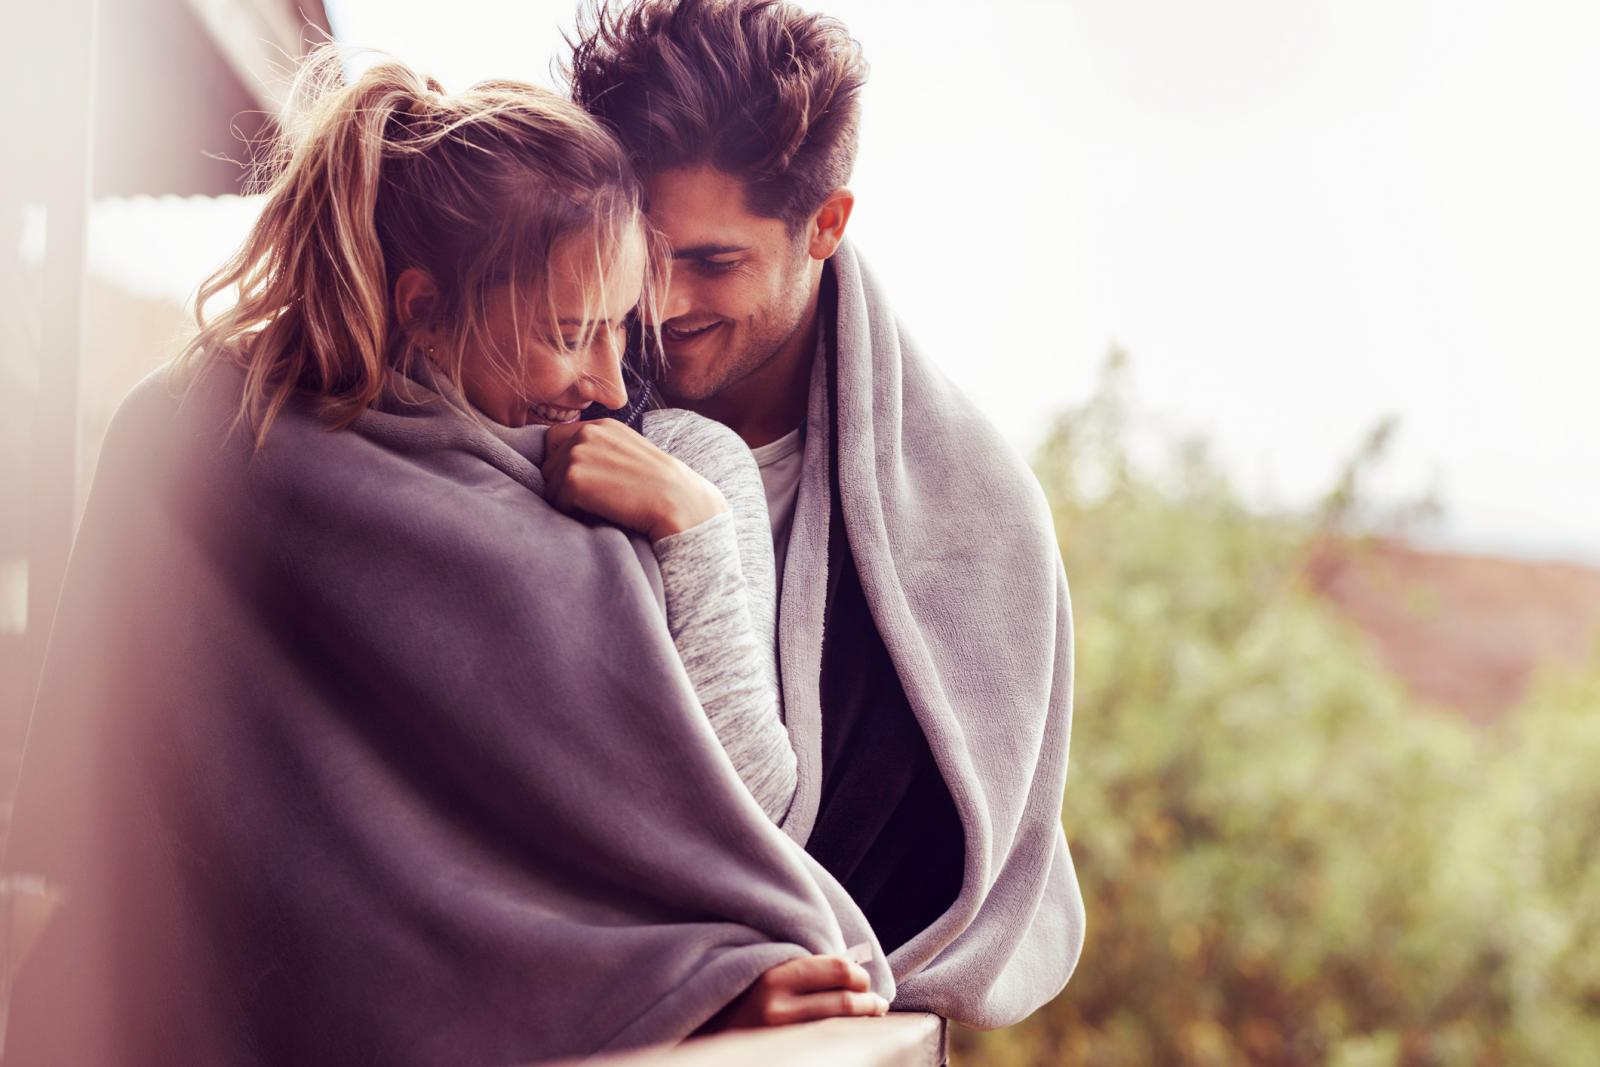 Man and woman standing together in a balcony wrapped in a blanket embracing and smiling